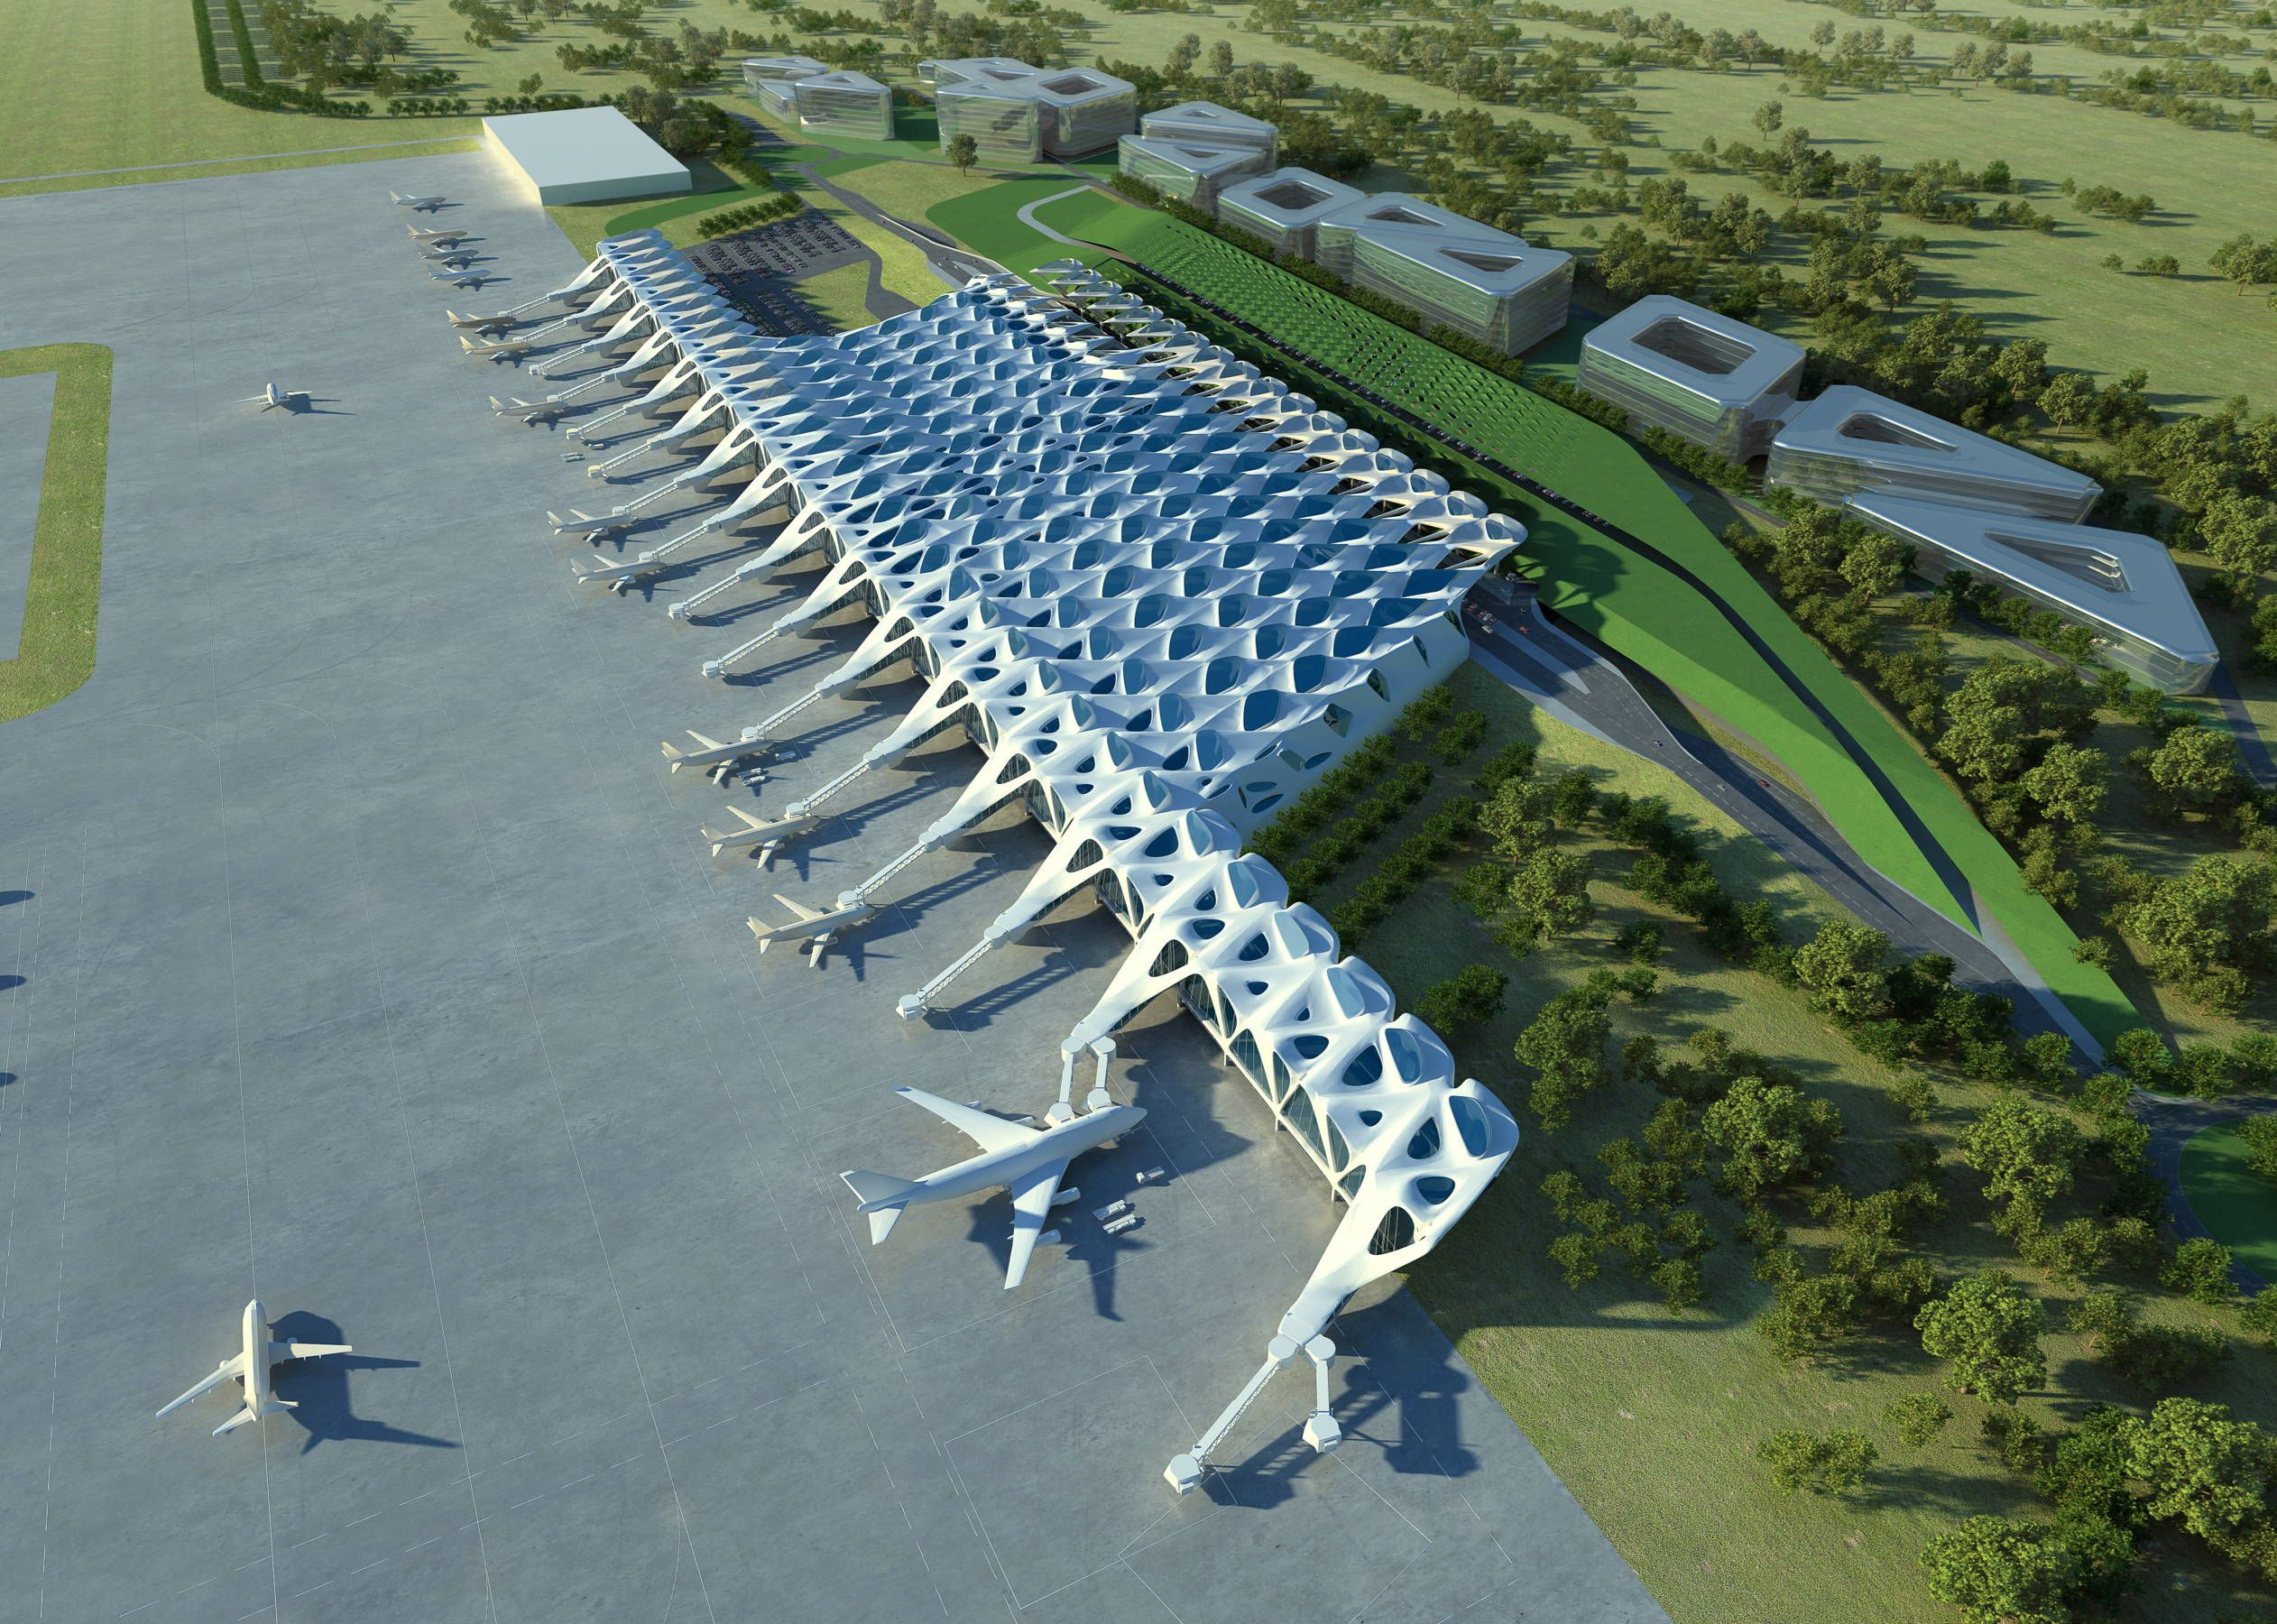 9 Stunning Next Gen Airport Designs Cleared For Takeoff Airport Design Zaha Hadid Zaha Hadid Architecture